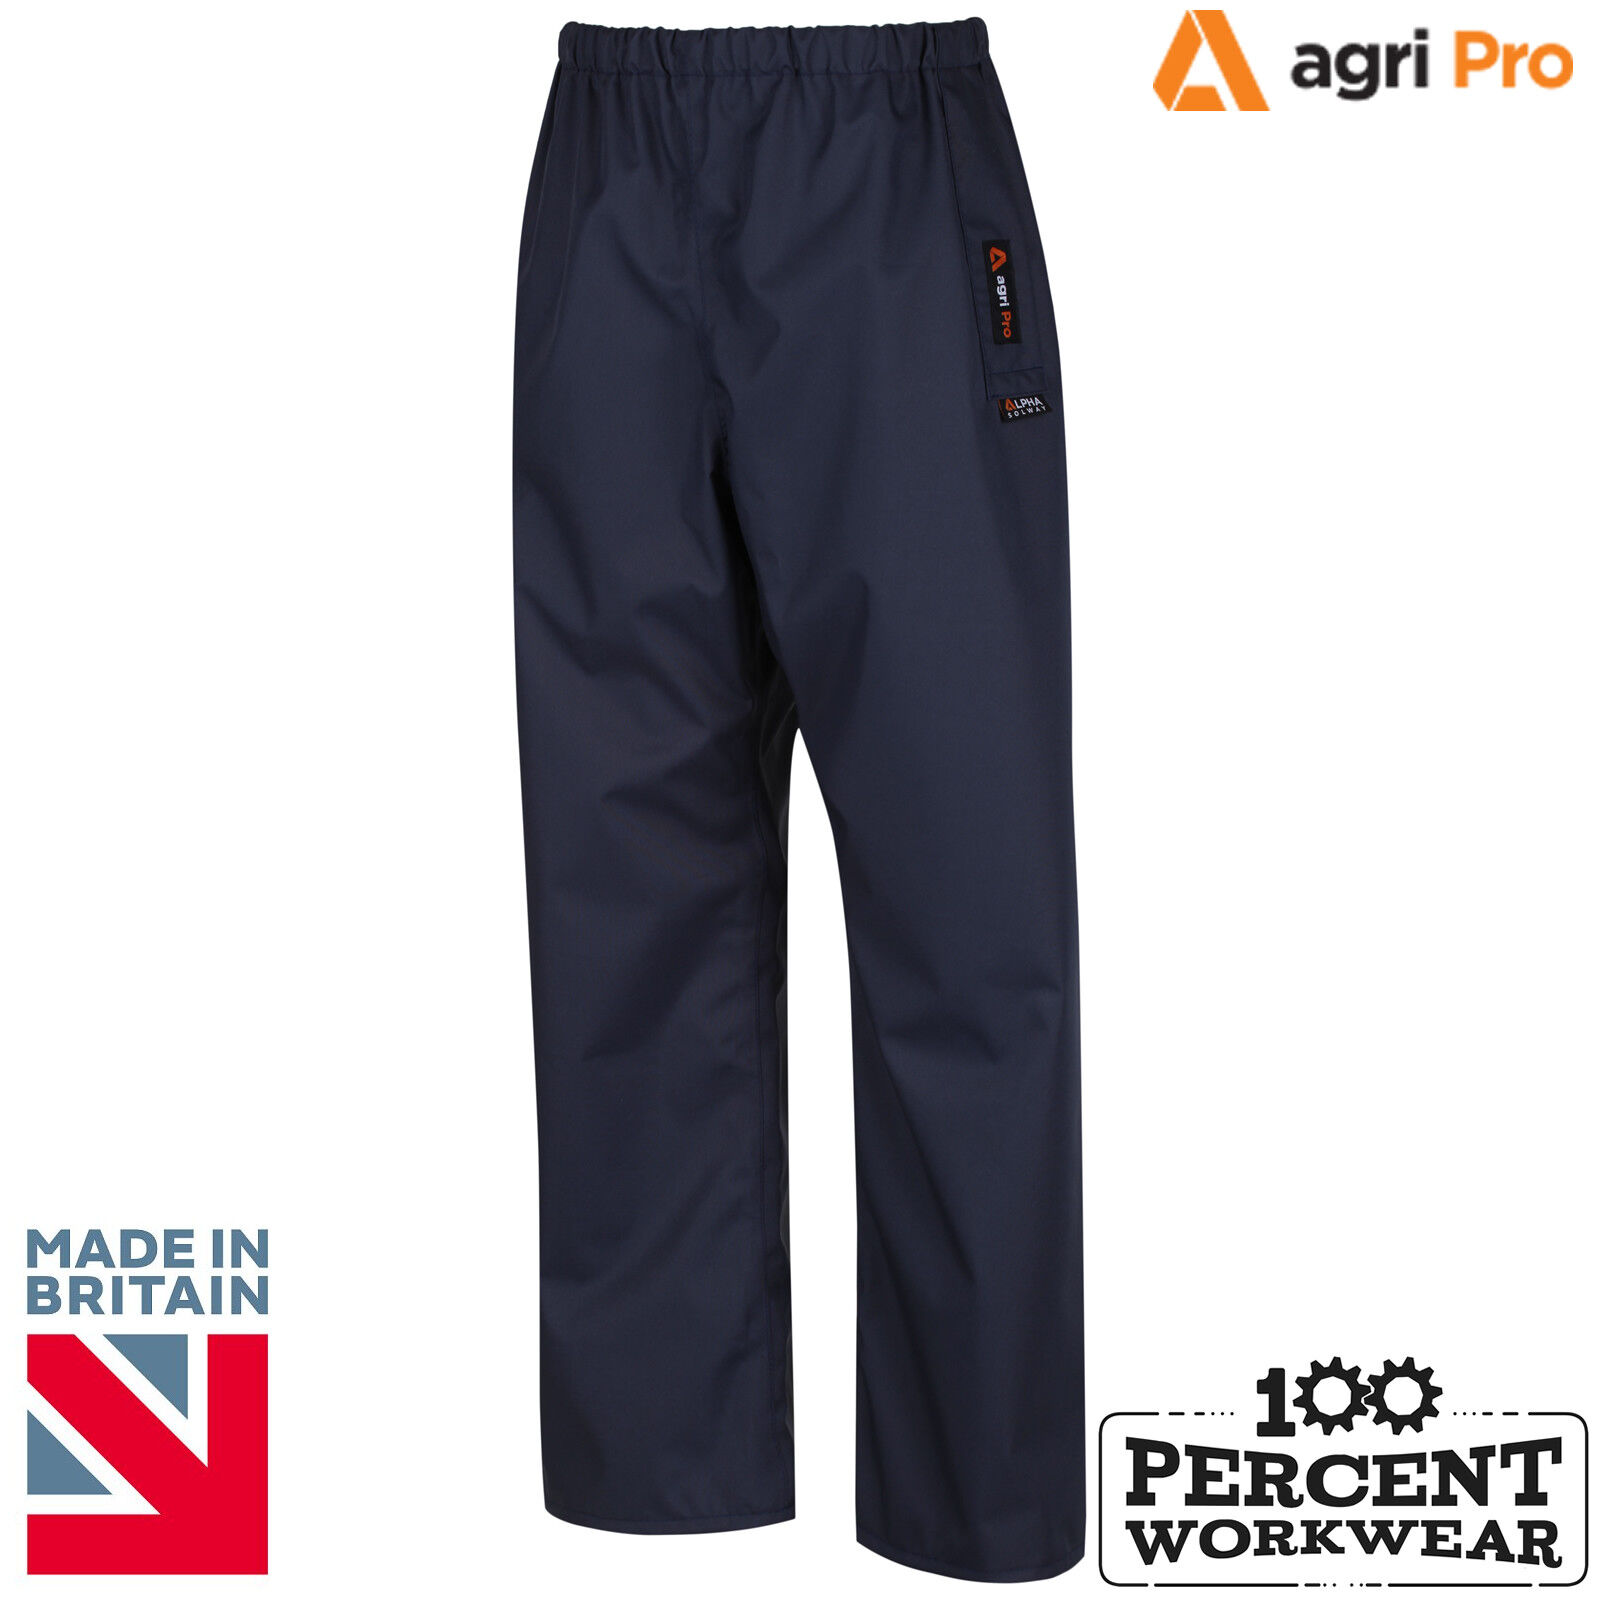 Alpha Solway Agri Pro Lightweight Durable Waterproof Over Trousers Farm Jet Wash